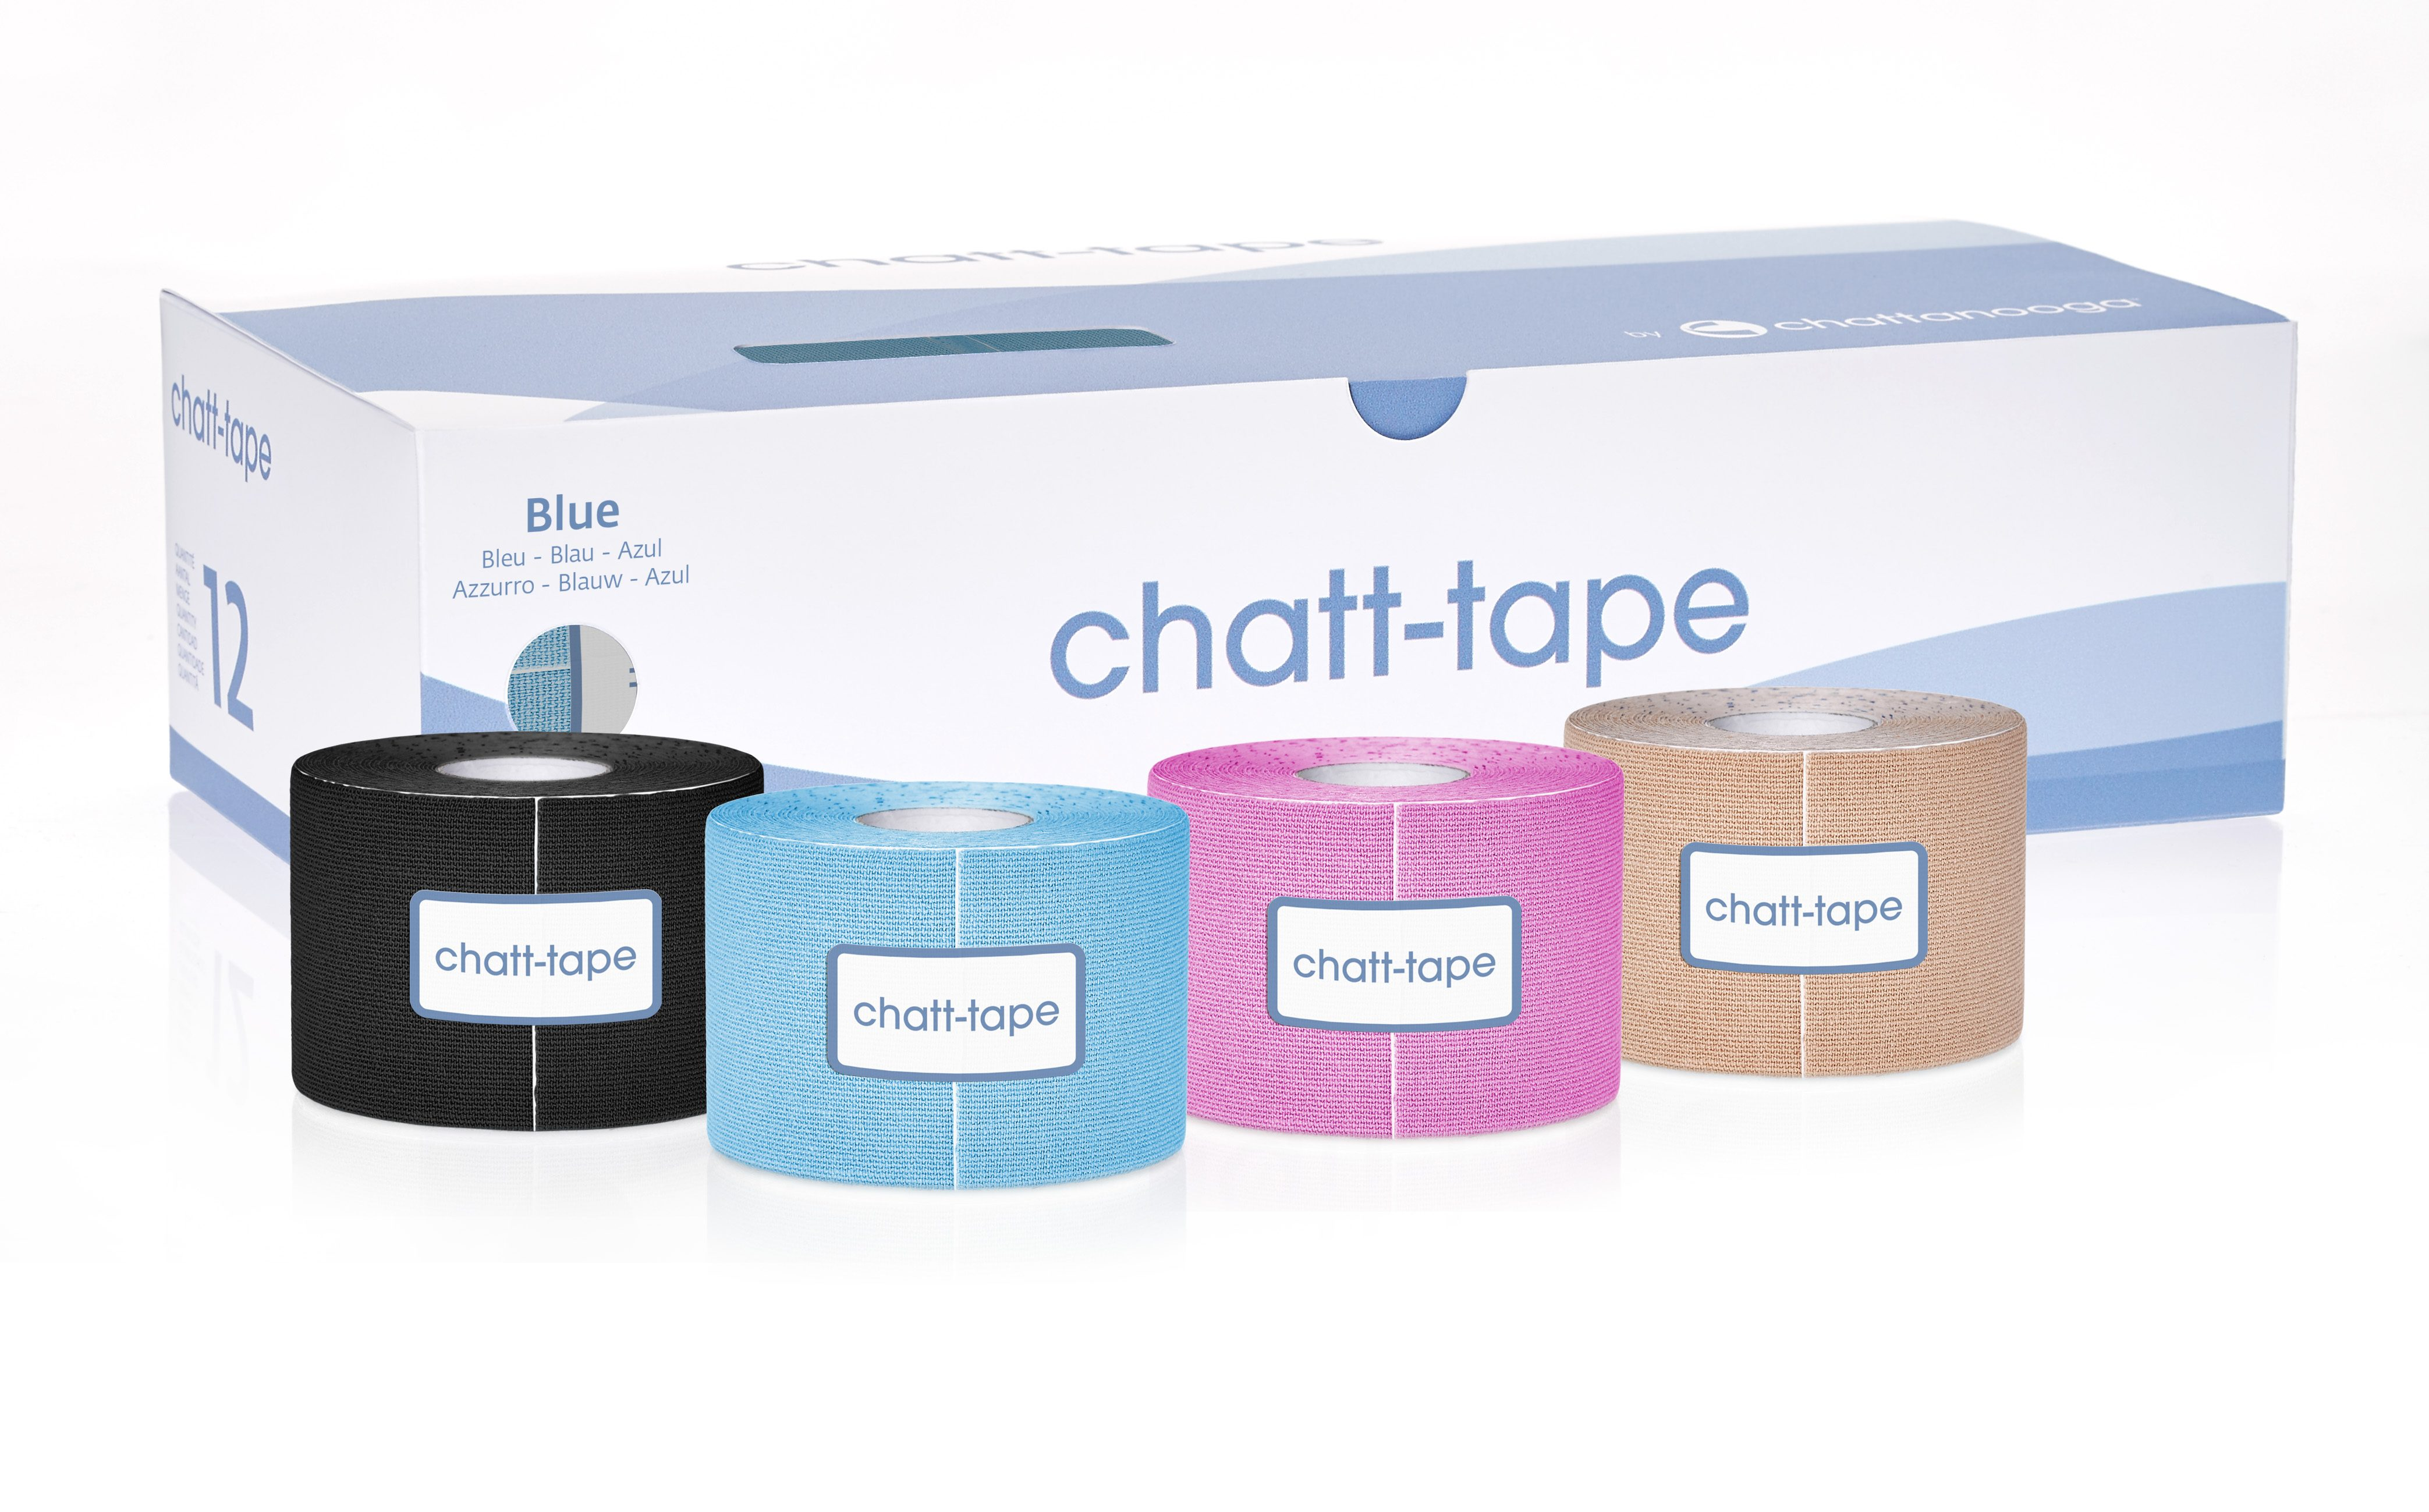 chatt-tape-box